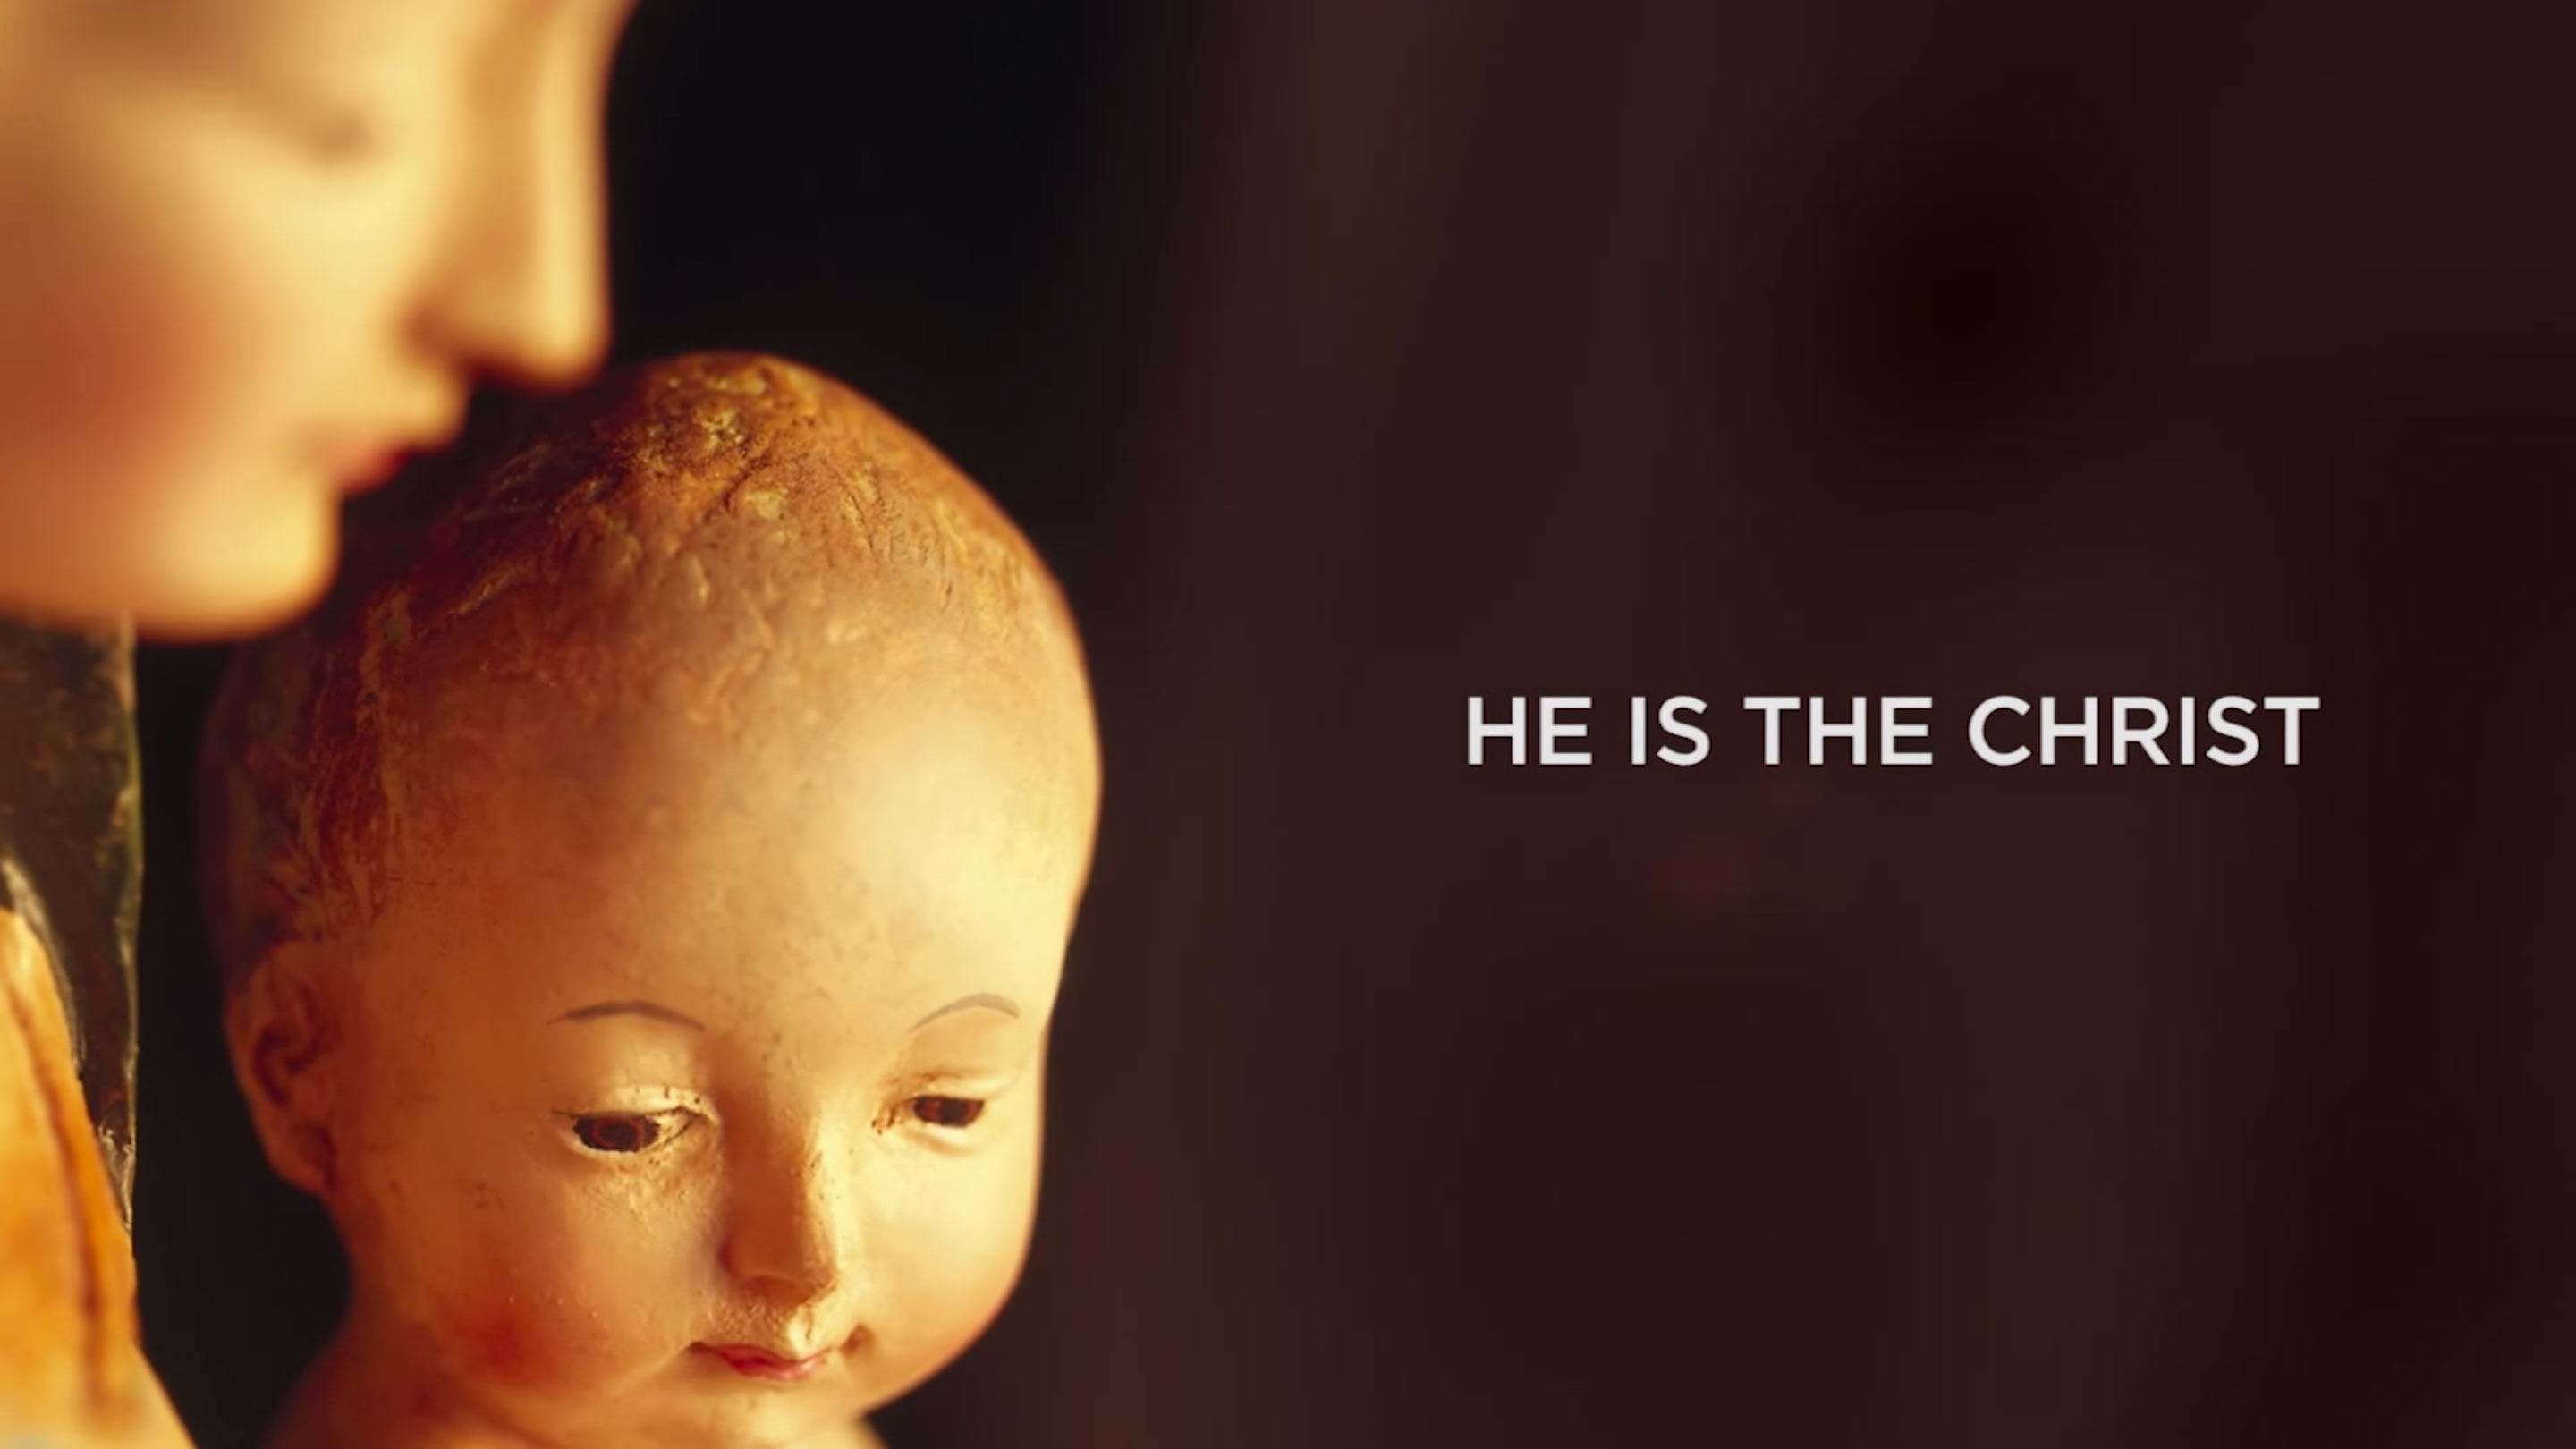 LDS Church releases video to launch #ShareTheGift campaign | KSL.com